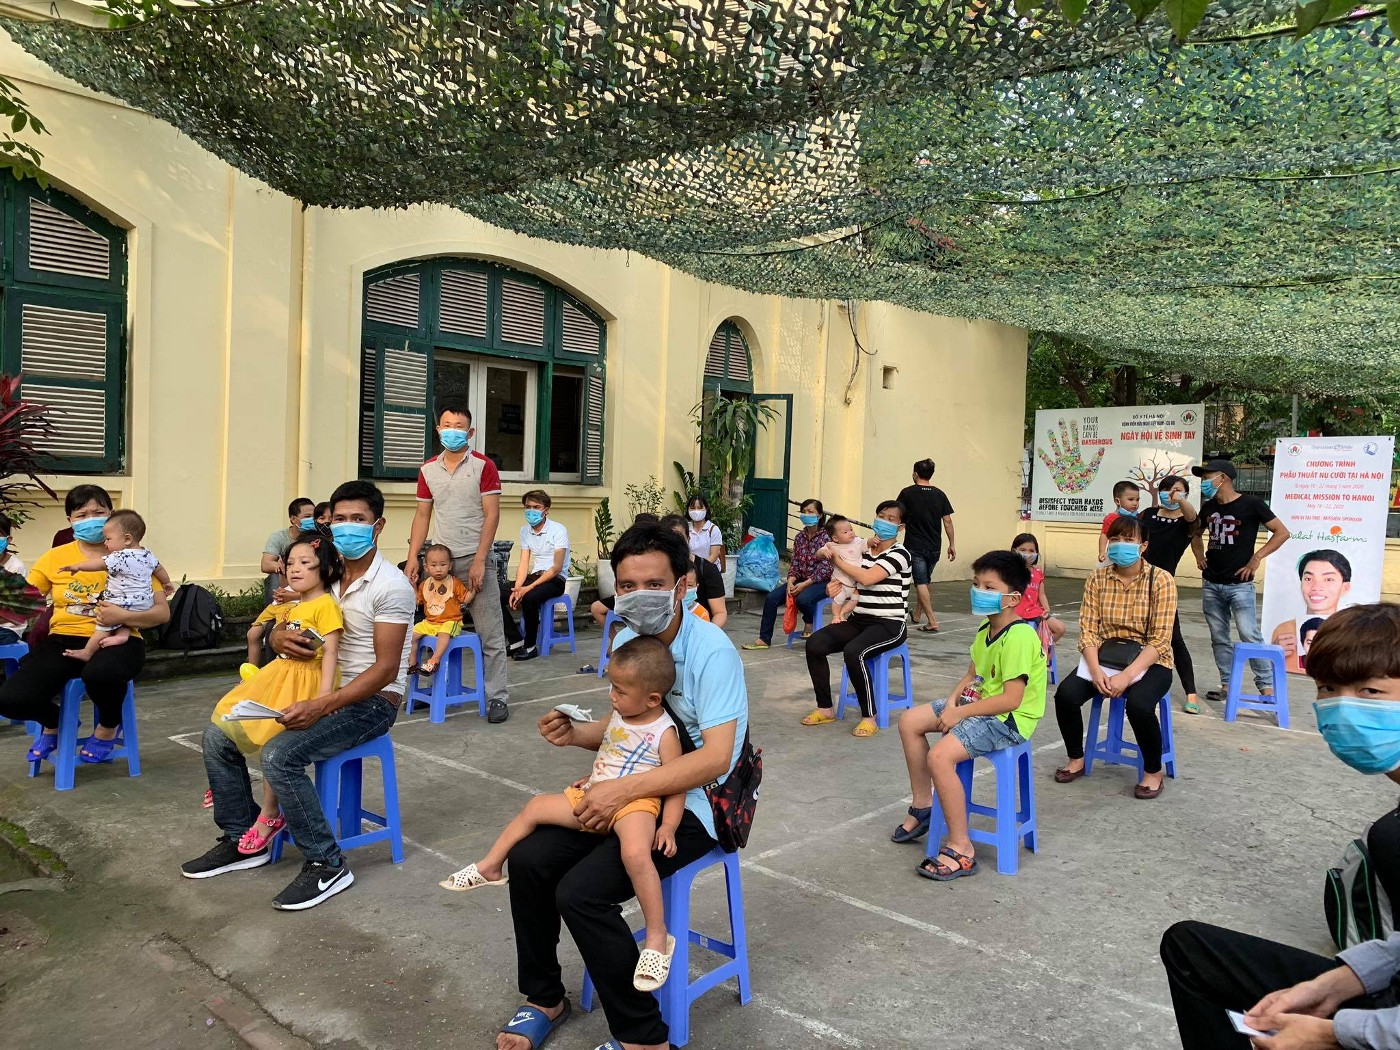 Patients and families sitting six feet apart during screening day at a medical mission in Vietnam.